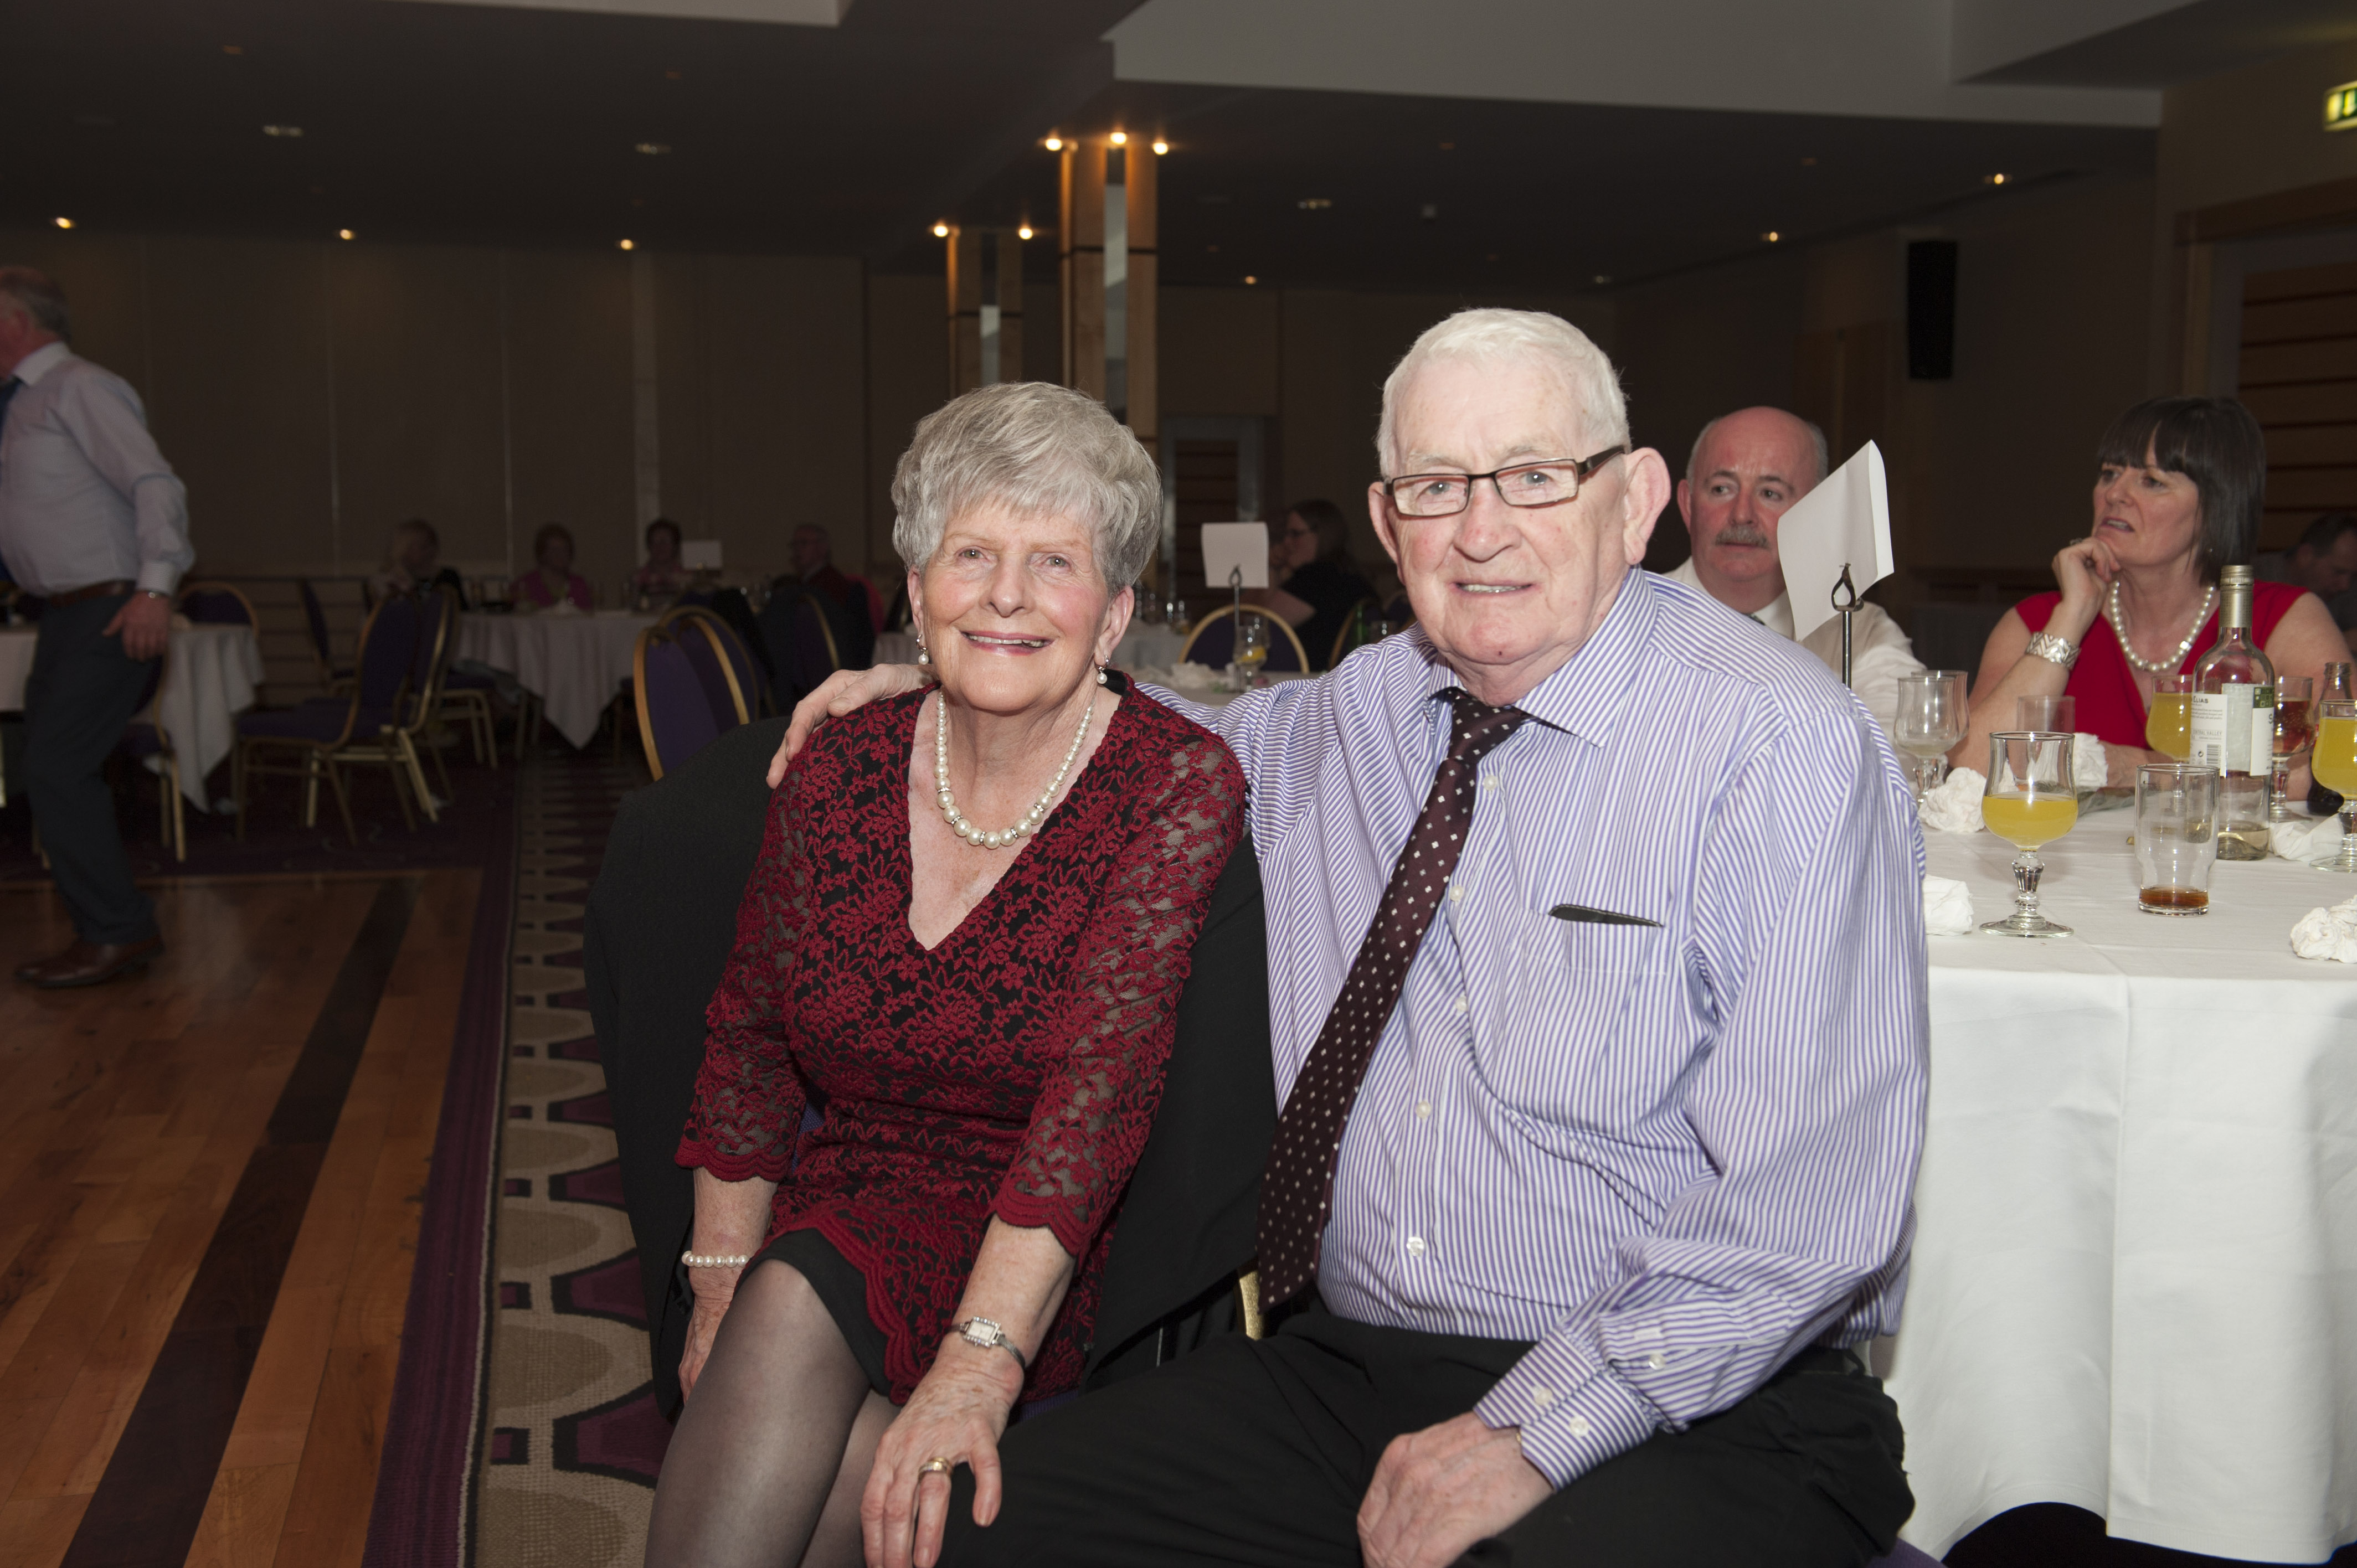 Ann and Anthony Swift at Pat The President's Country Music & Western Night in The Hillgrove Hotel. ©Rory Geary/The Northern Standard